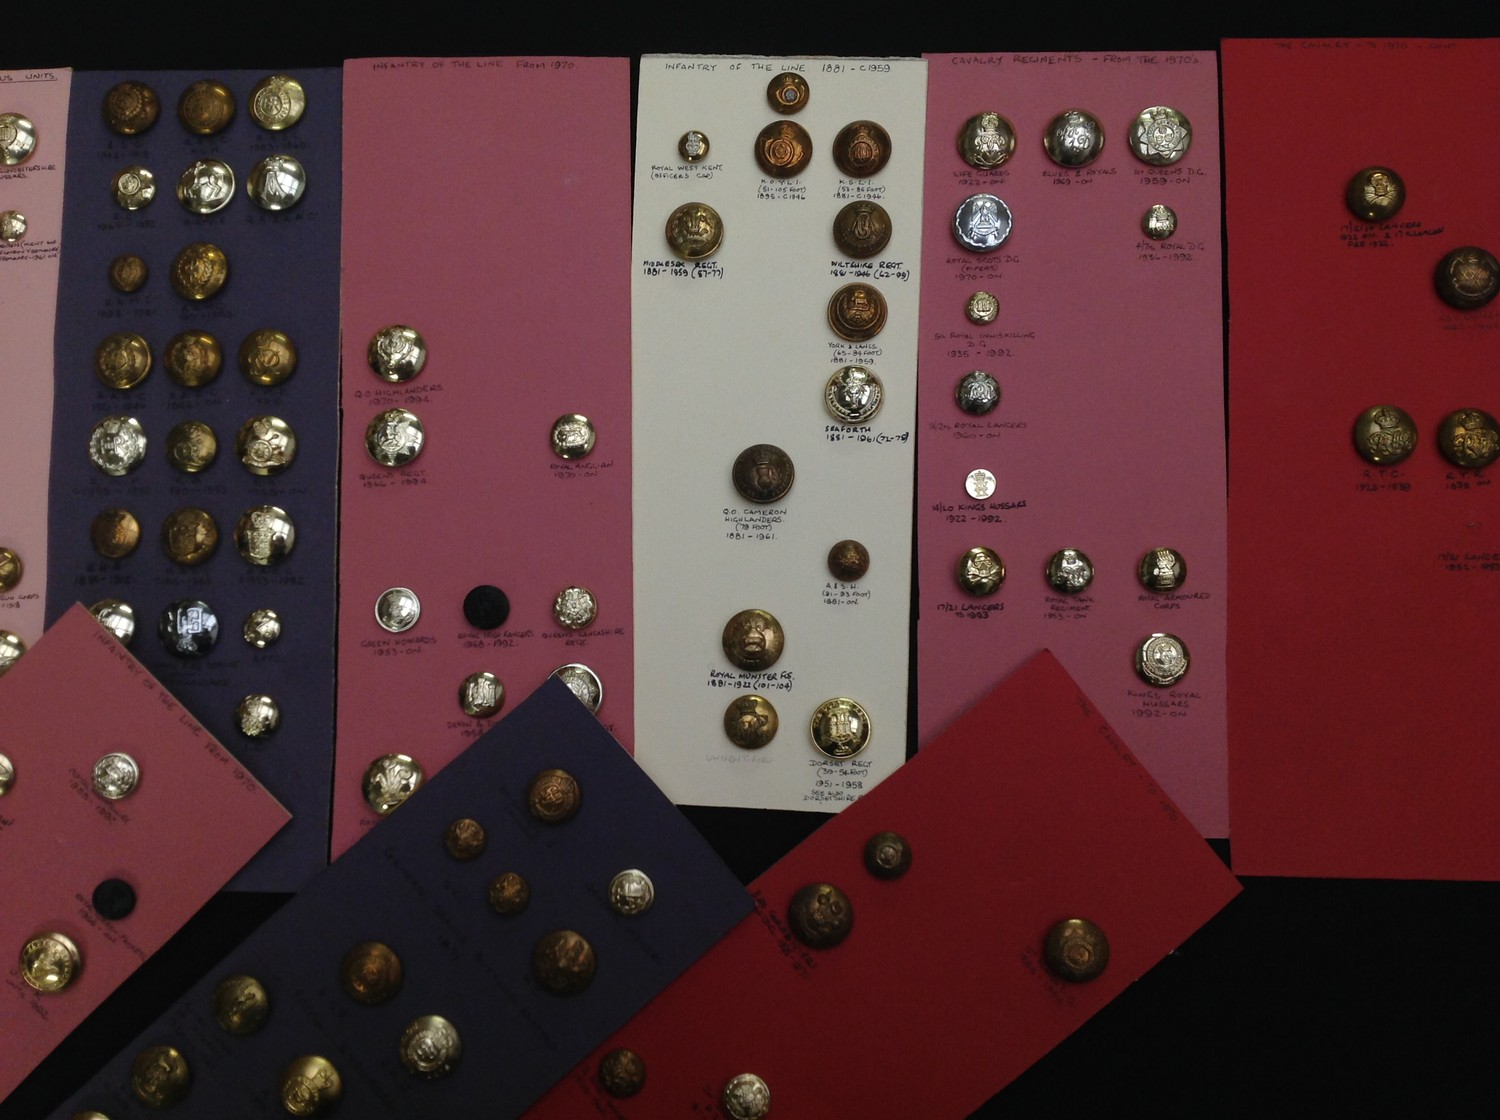 A collection of British Army Regimental and Corps buttons (Plus some Royal Navy & Royal Air Force) - Image 3 of 5